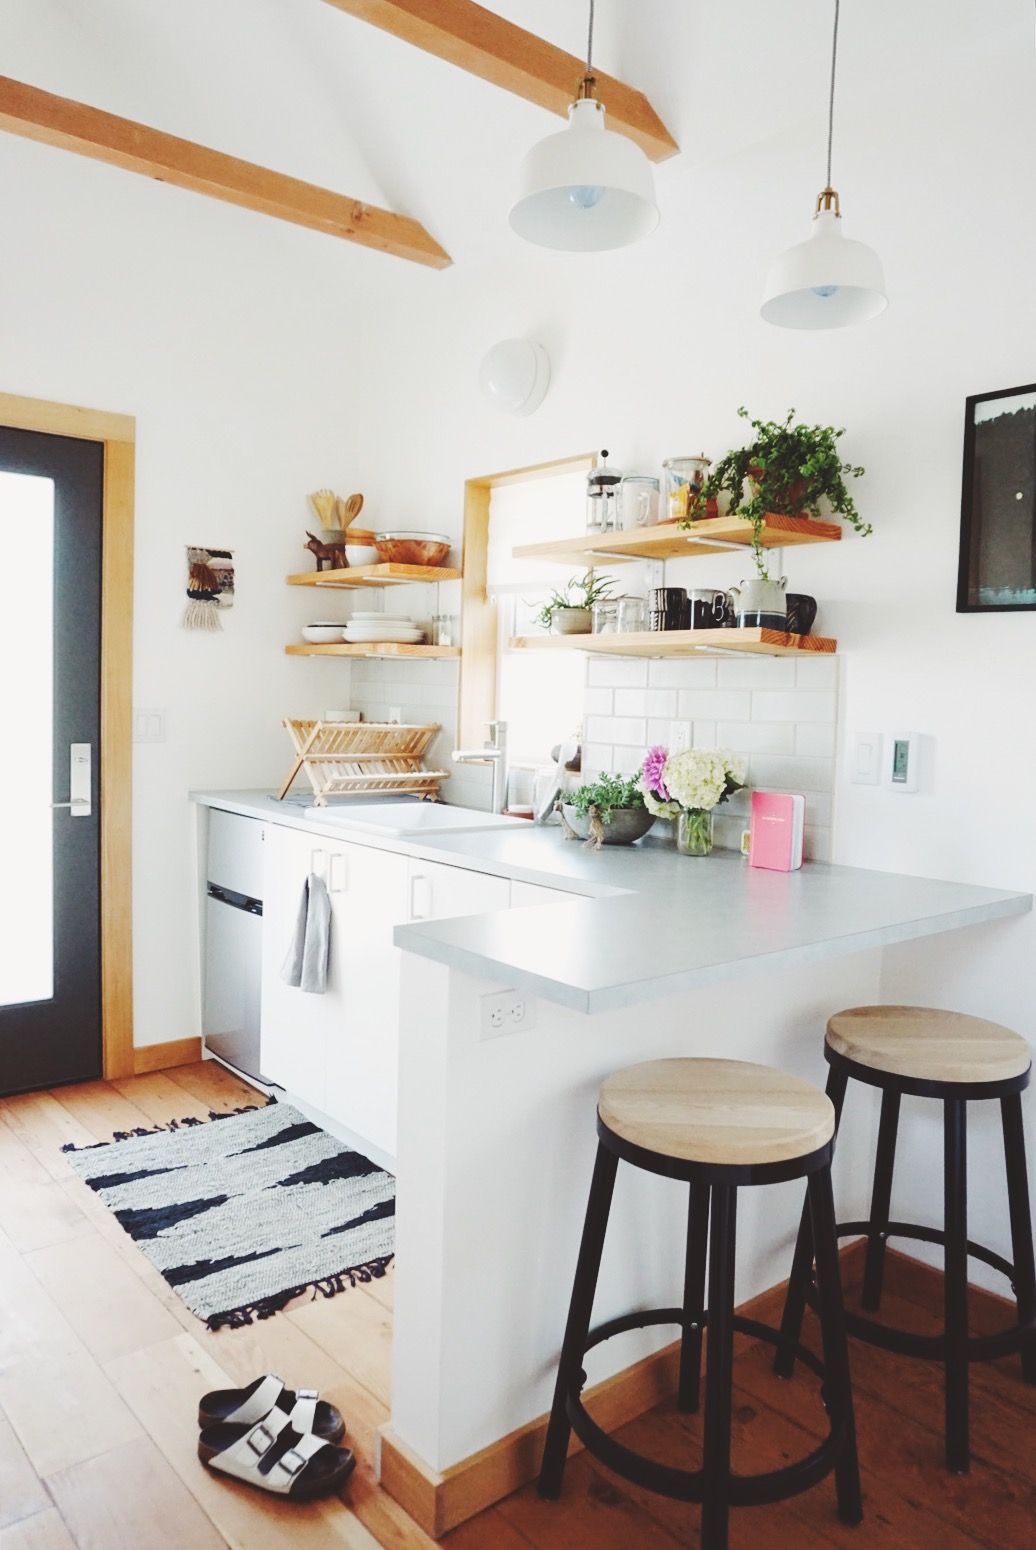 I love the light in the kitchen, pops of color and contrasting paint ...